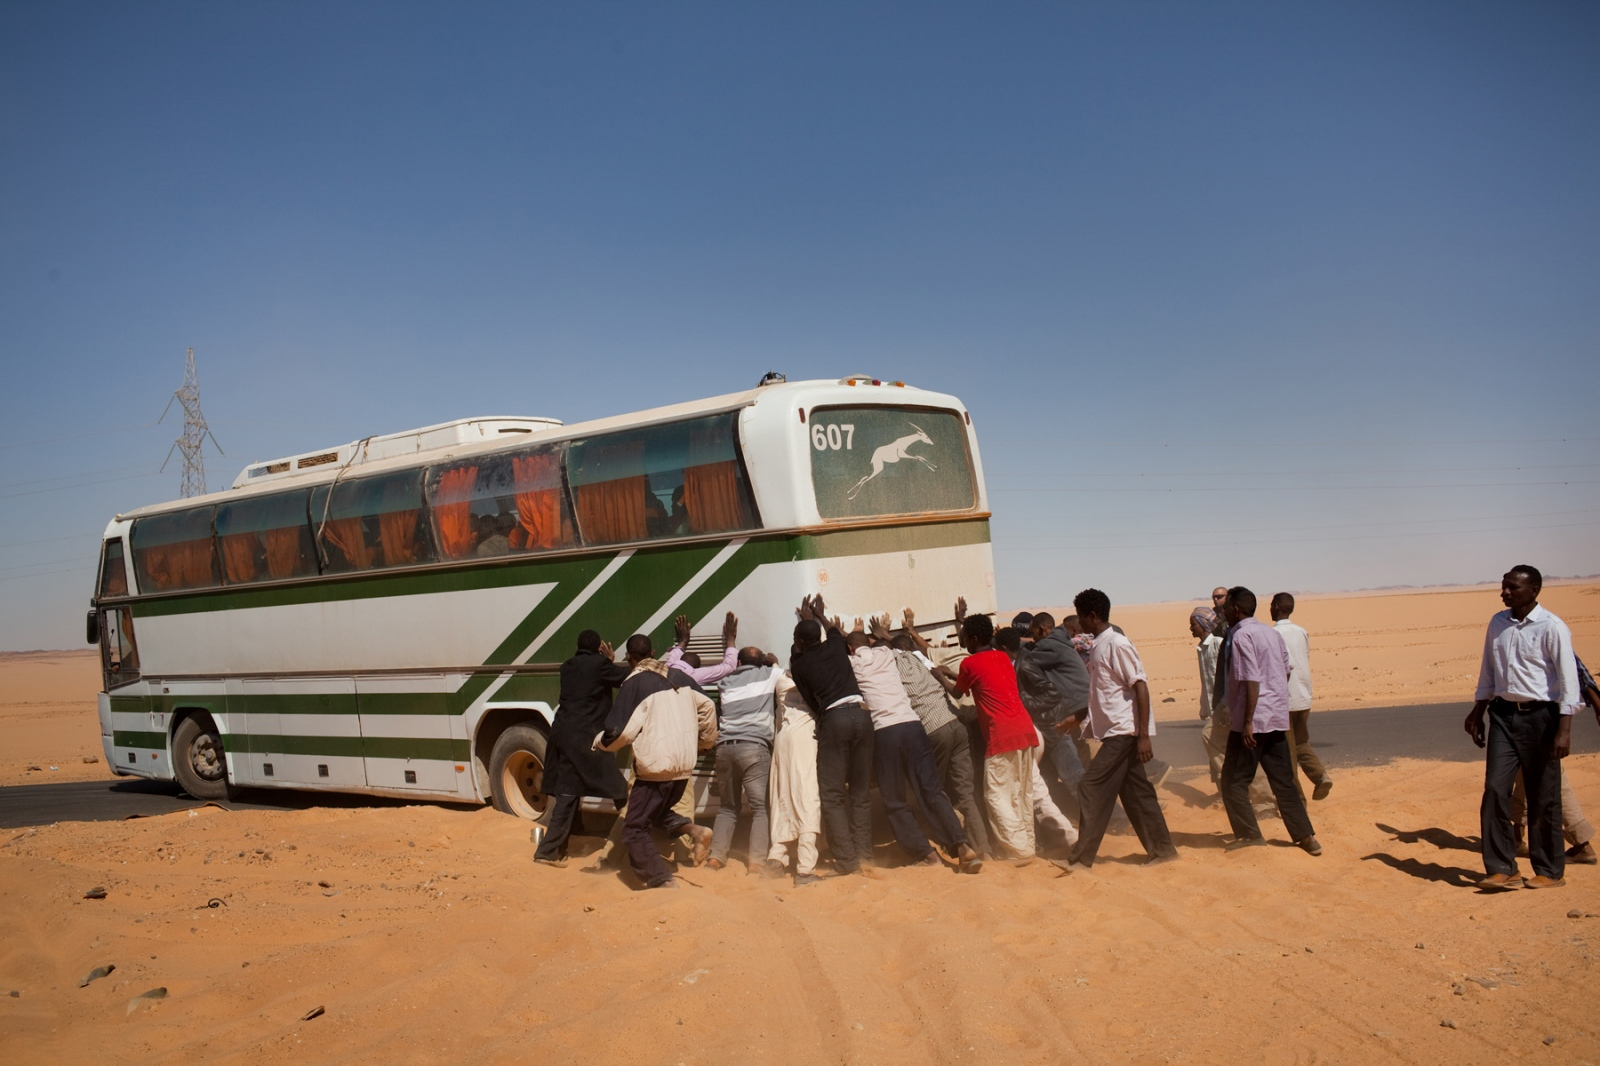 Migrants assist in moving a bus stuck in the sand on the road from Kufra, southern Libya, to Ajdabiya, in the north on March 7, 2012.